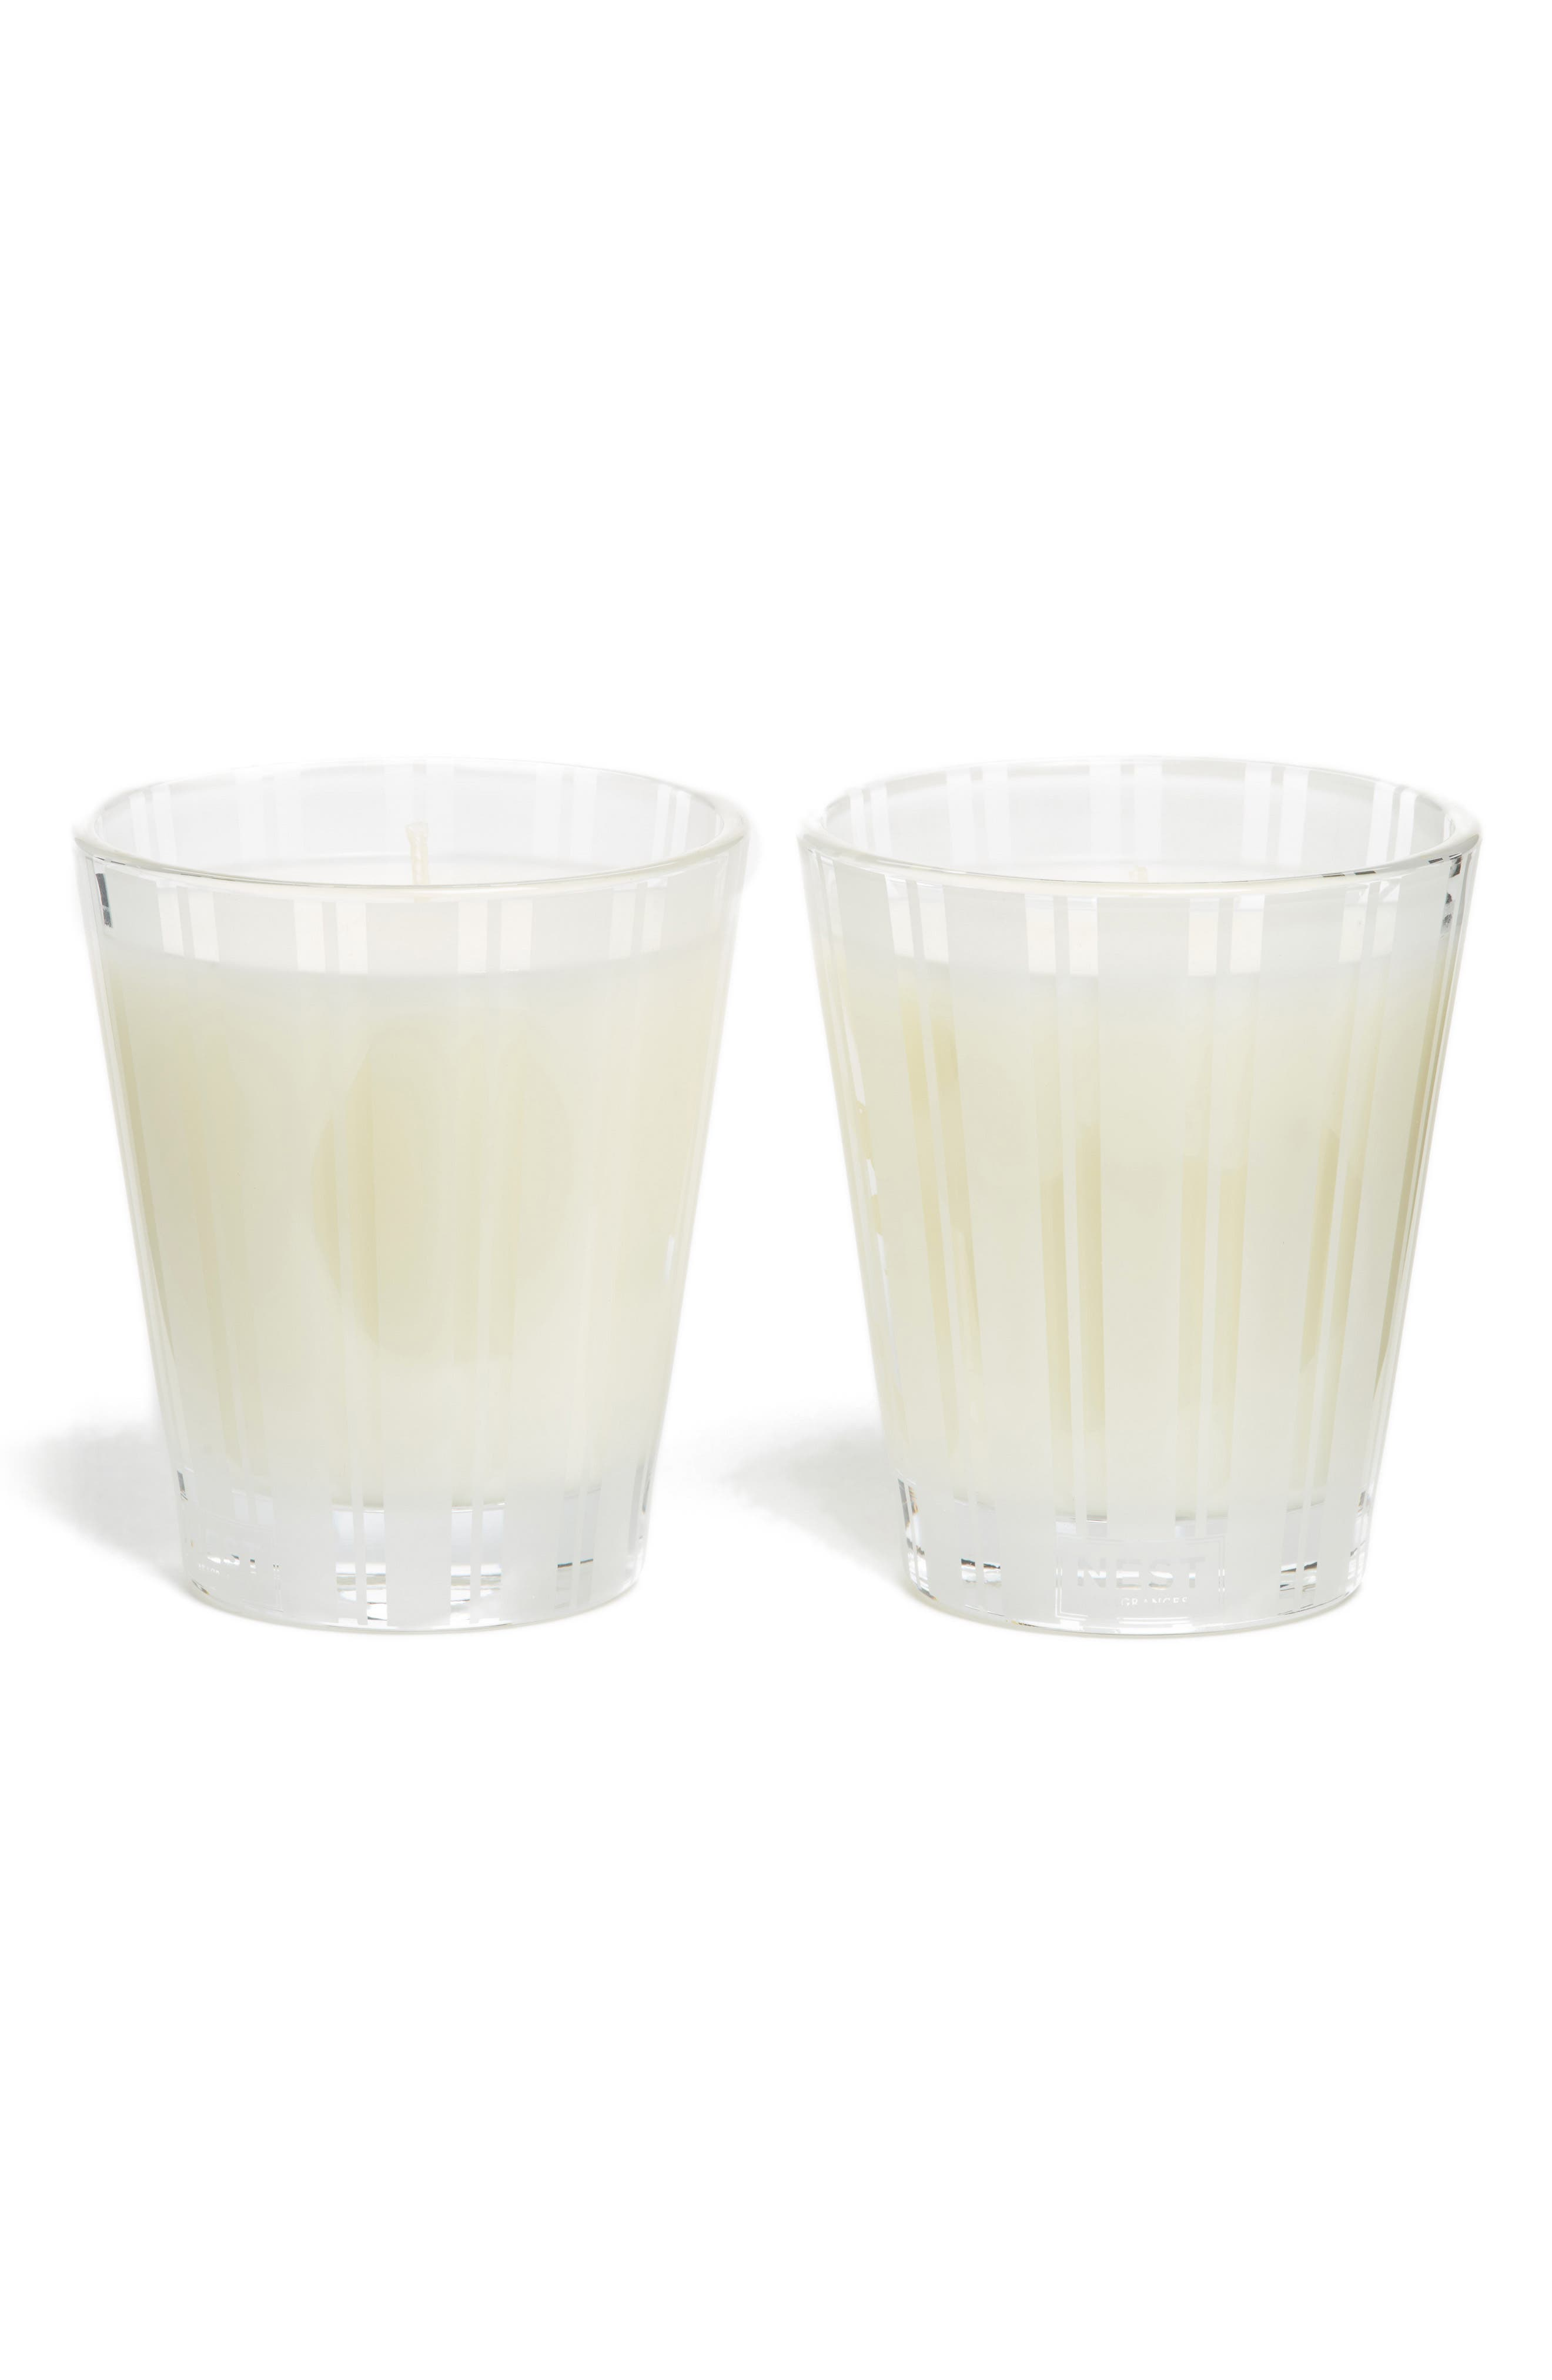 Grapefruit Scented Candle Duo,                             Main thumbnail 1, color,                             No Color